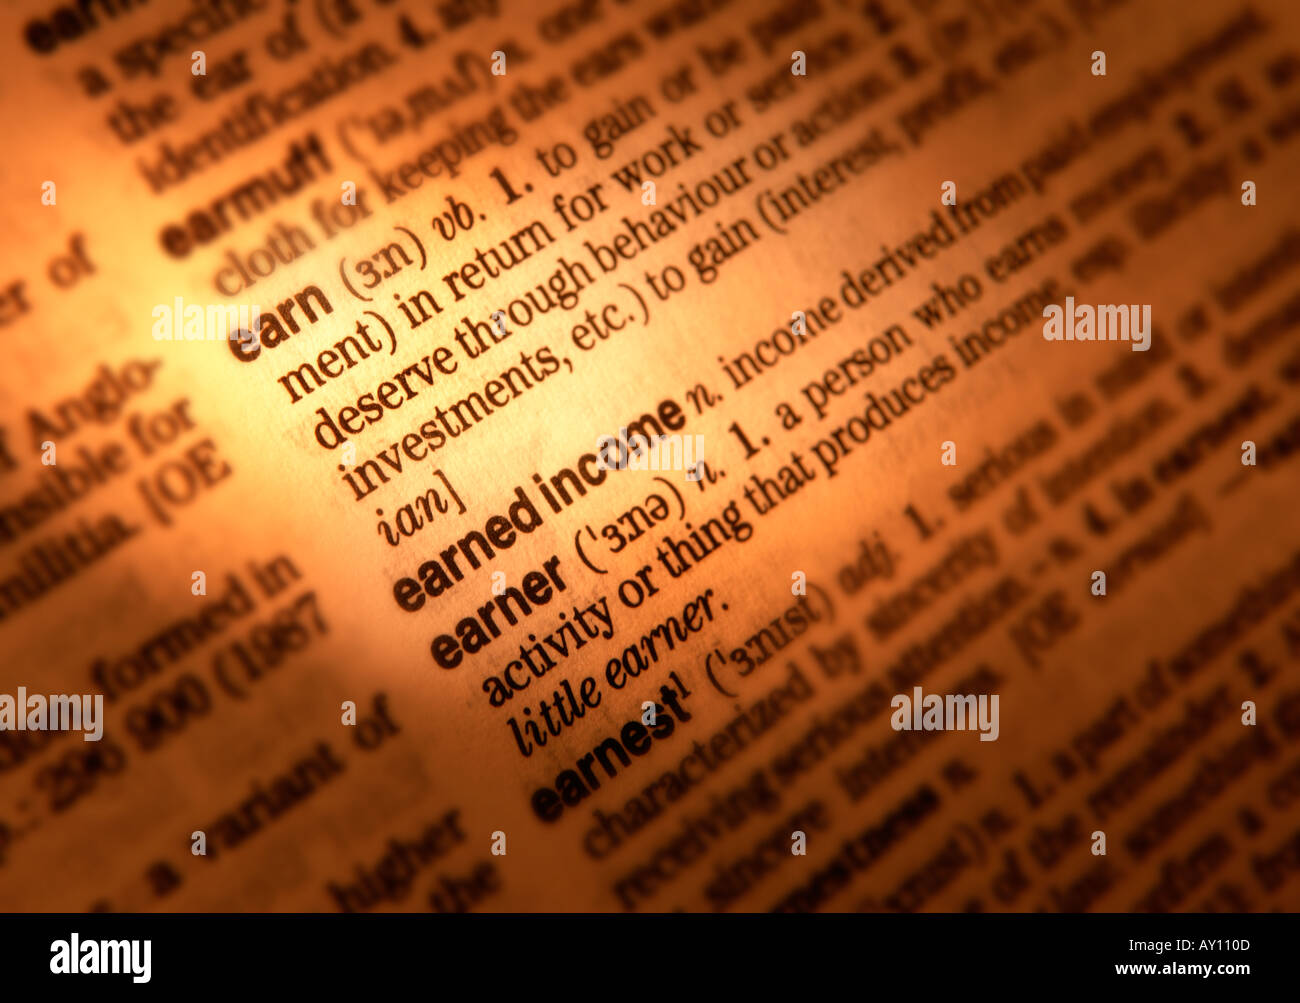 CLOSE UP OF DICTIONARY PAGE SHOWING DEFINITION OF THE WORD EARN - Stock Image